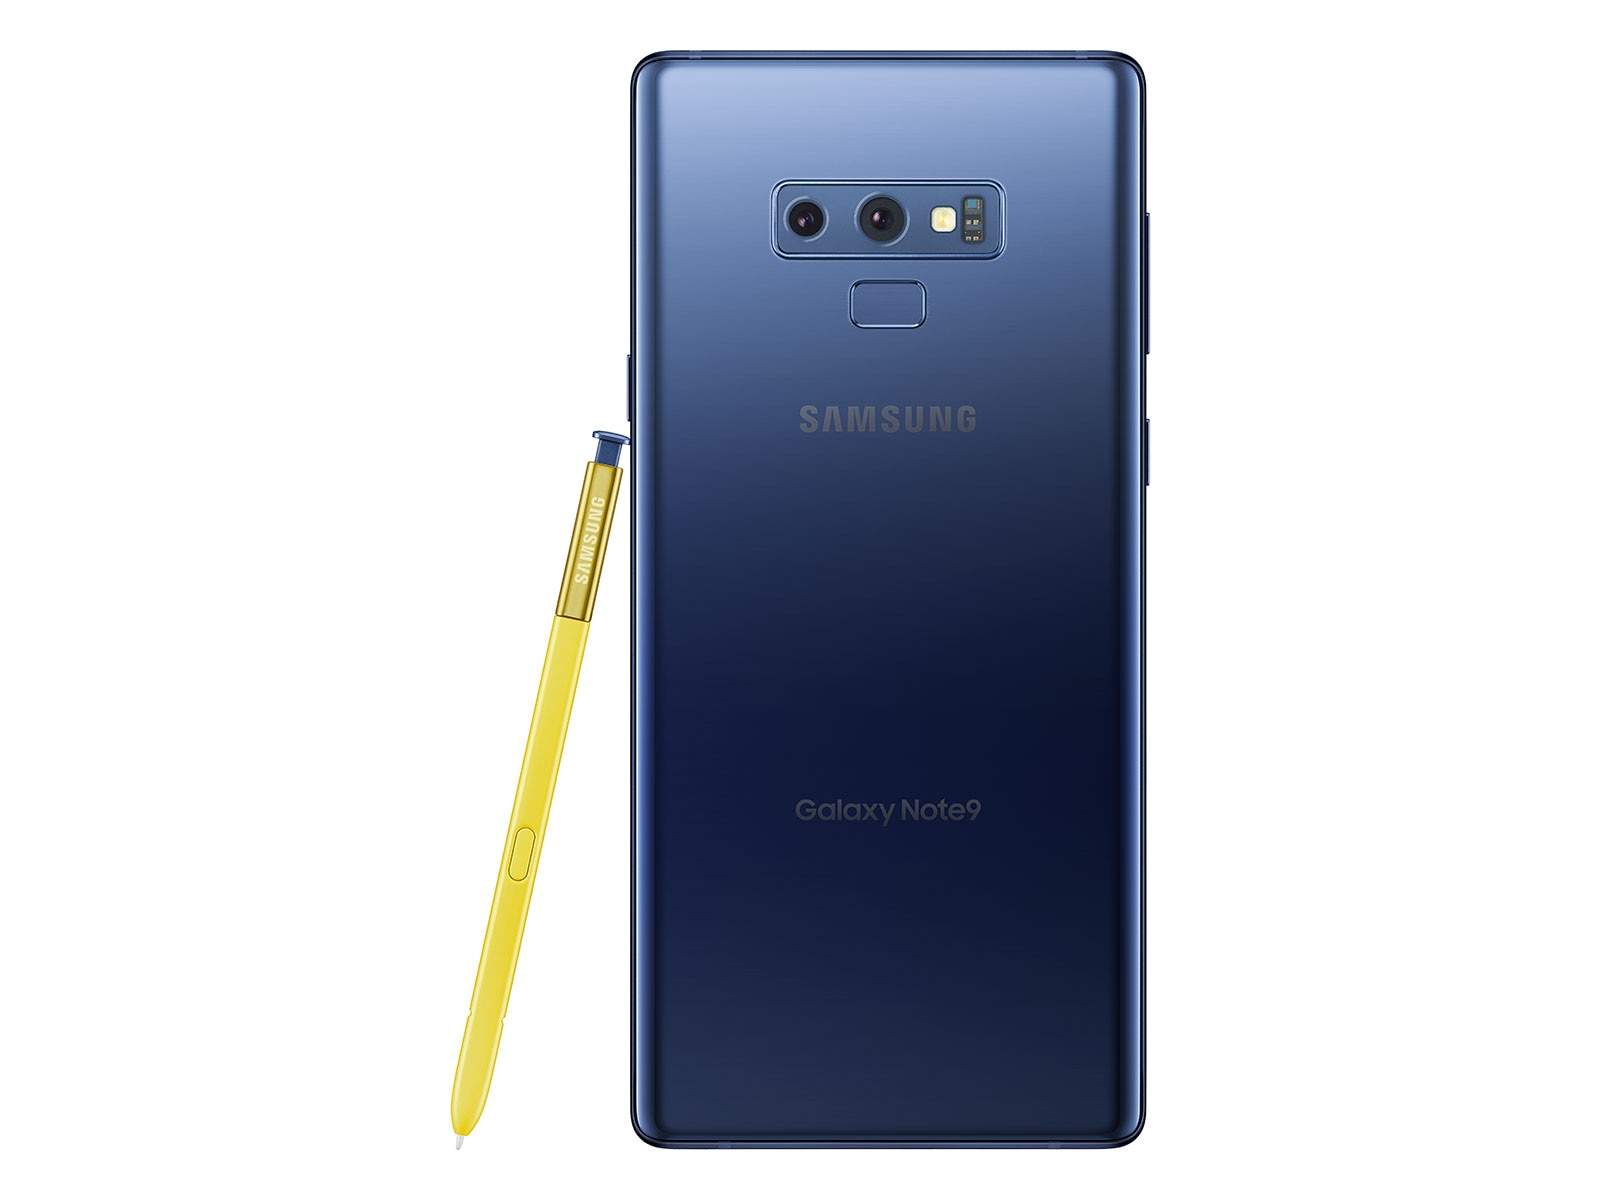 16 Blue Rgb Back Pen Galaxy Note Gb Unlocked